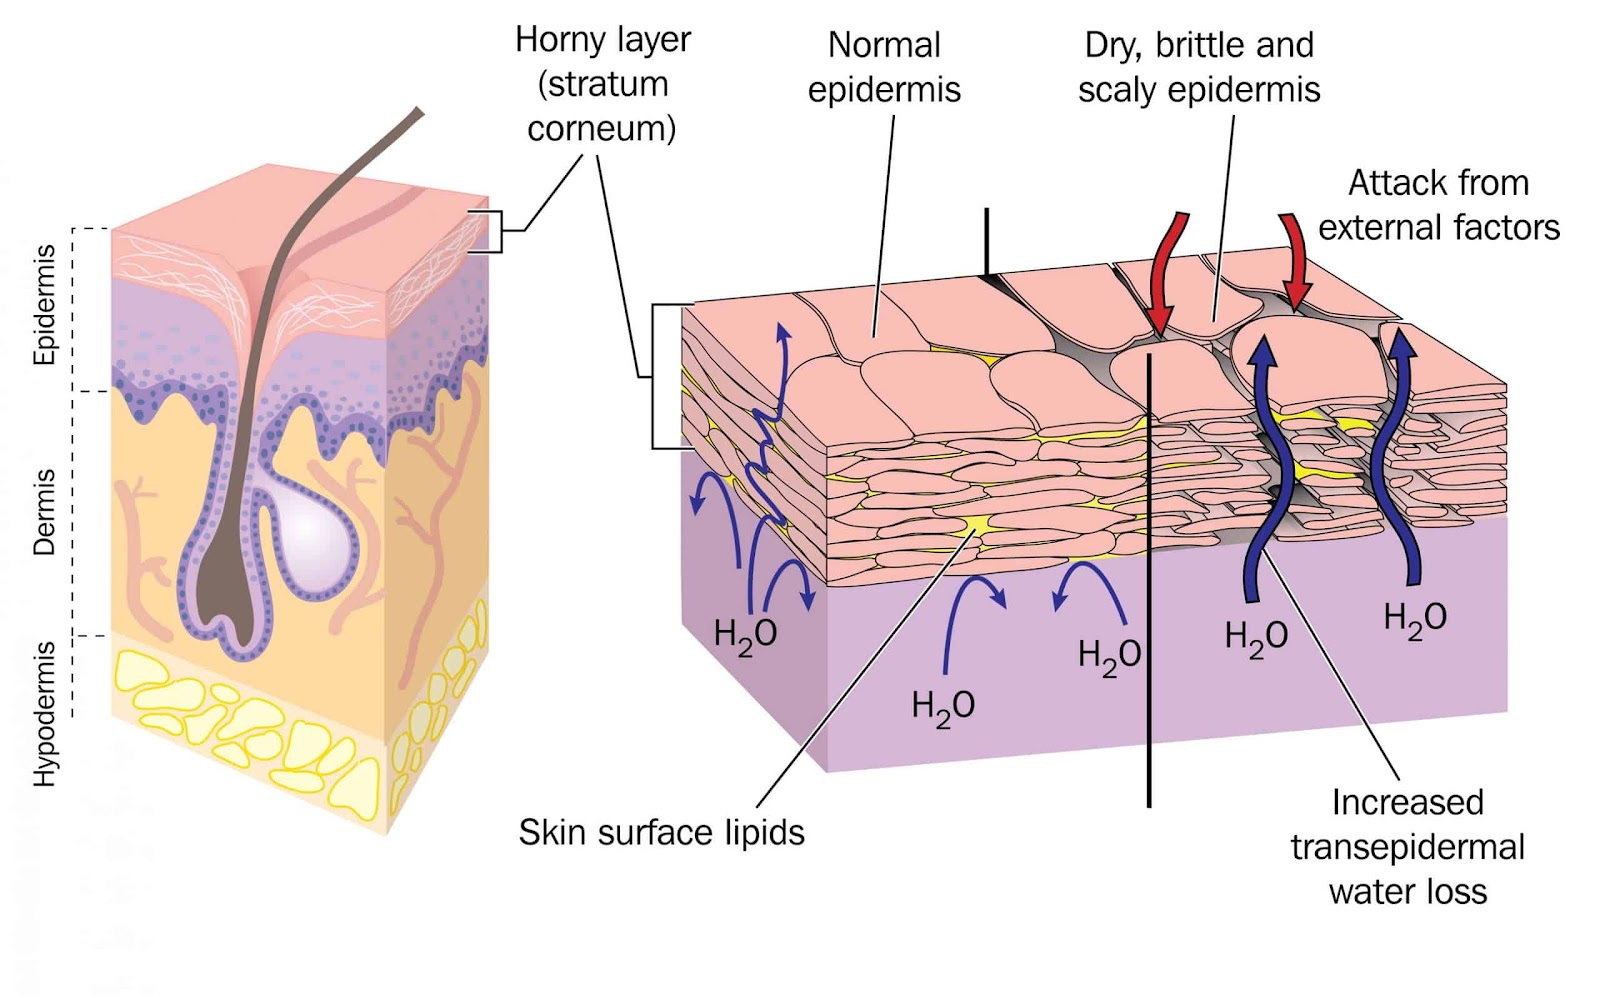 Section through skin showing normal epidermis and skin surface structure resulting in water loss and dry, brittle, scaly skin